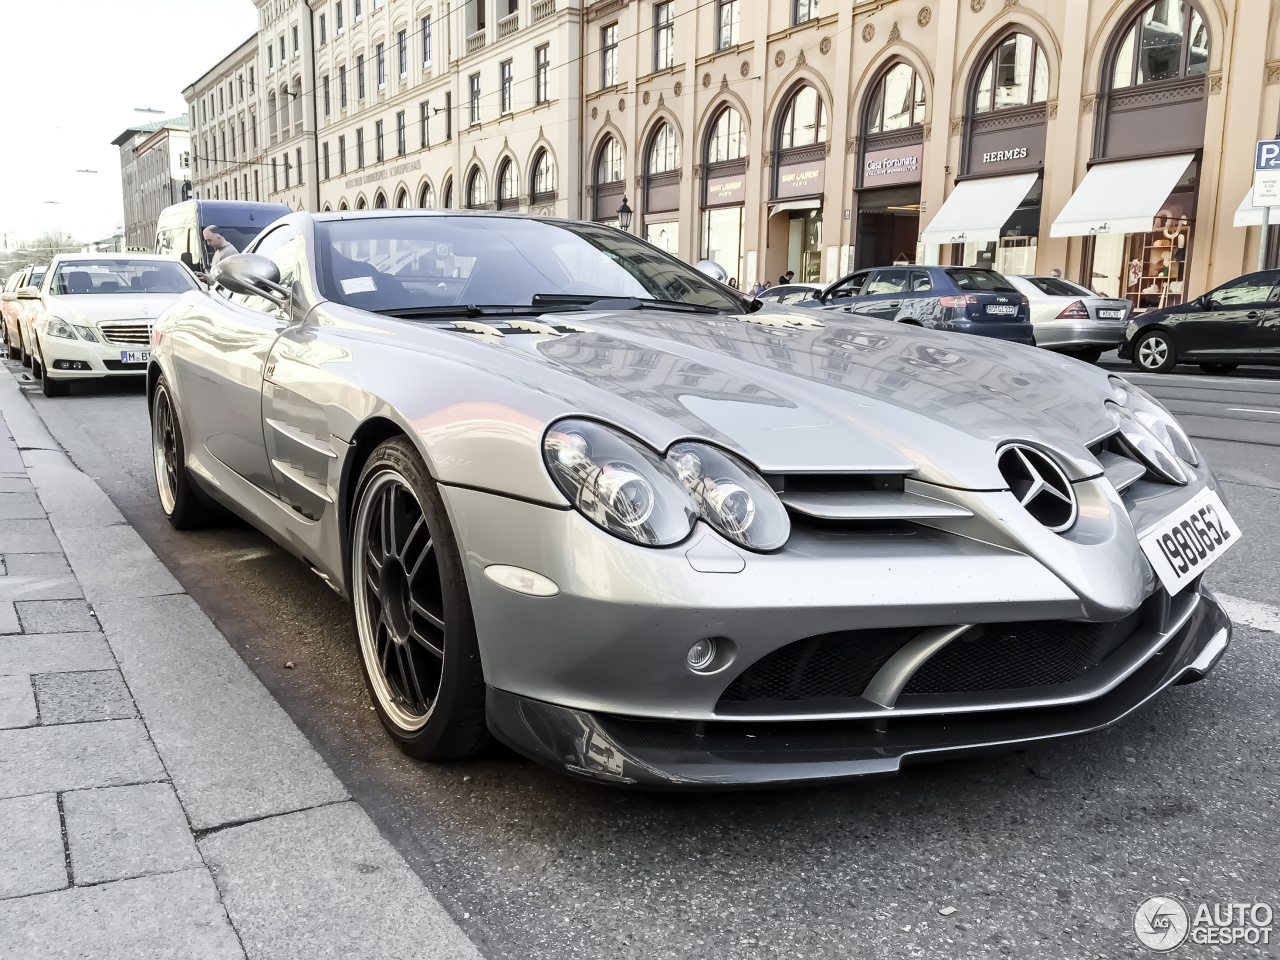 Mercedes benz slr mclaren 722 edition 16 november 2015 for Mercedes benz slr mclaren price